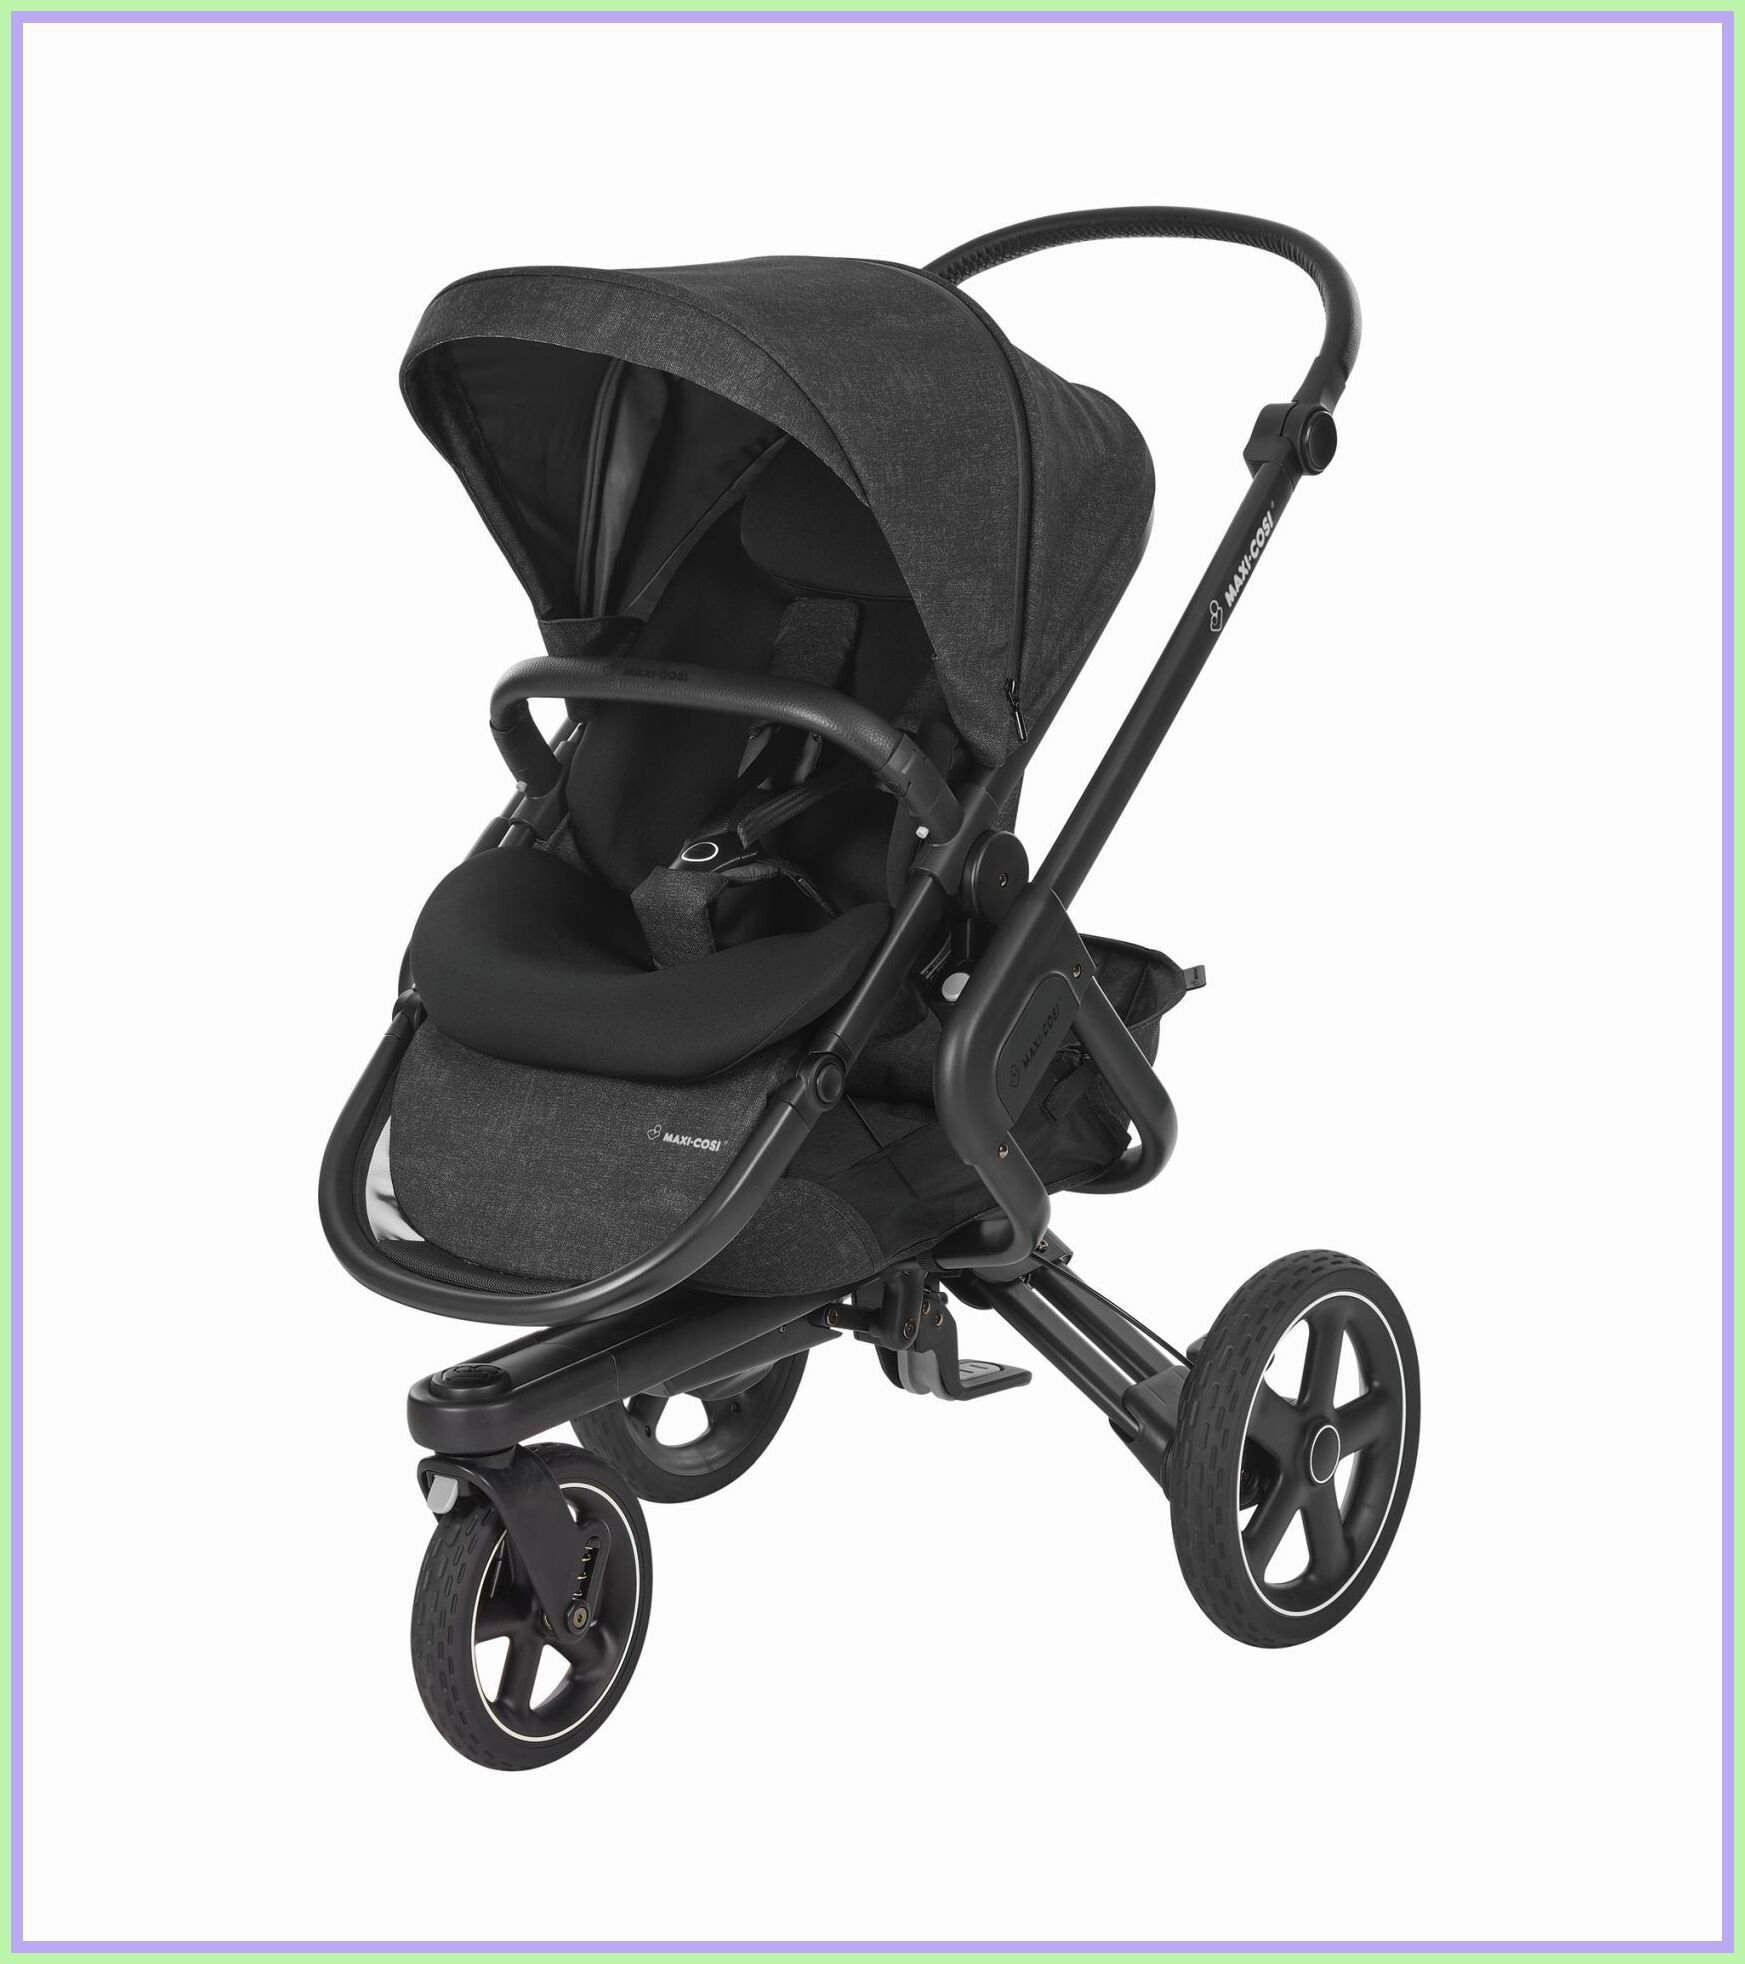 33 reference of graco stroller black friday 2019 in 2020